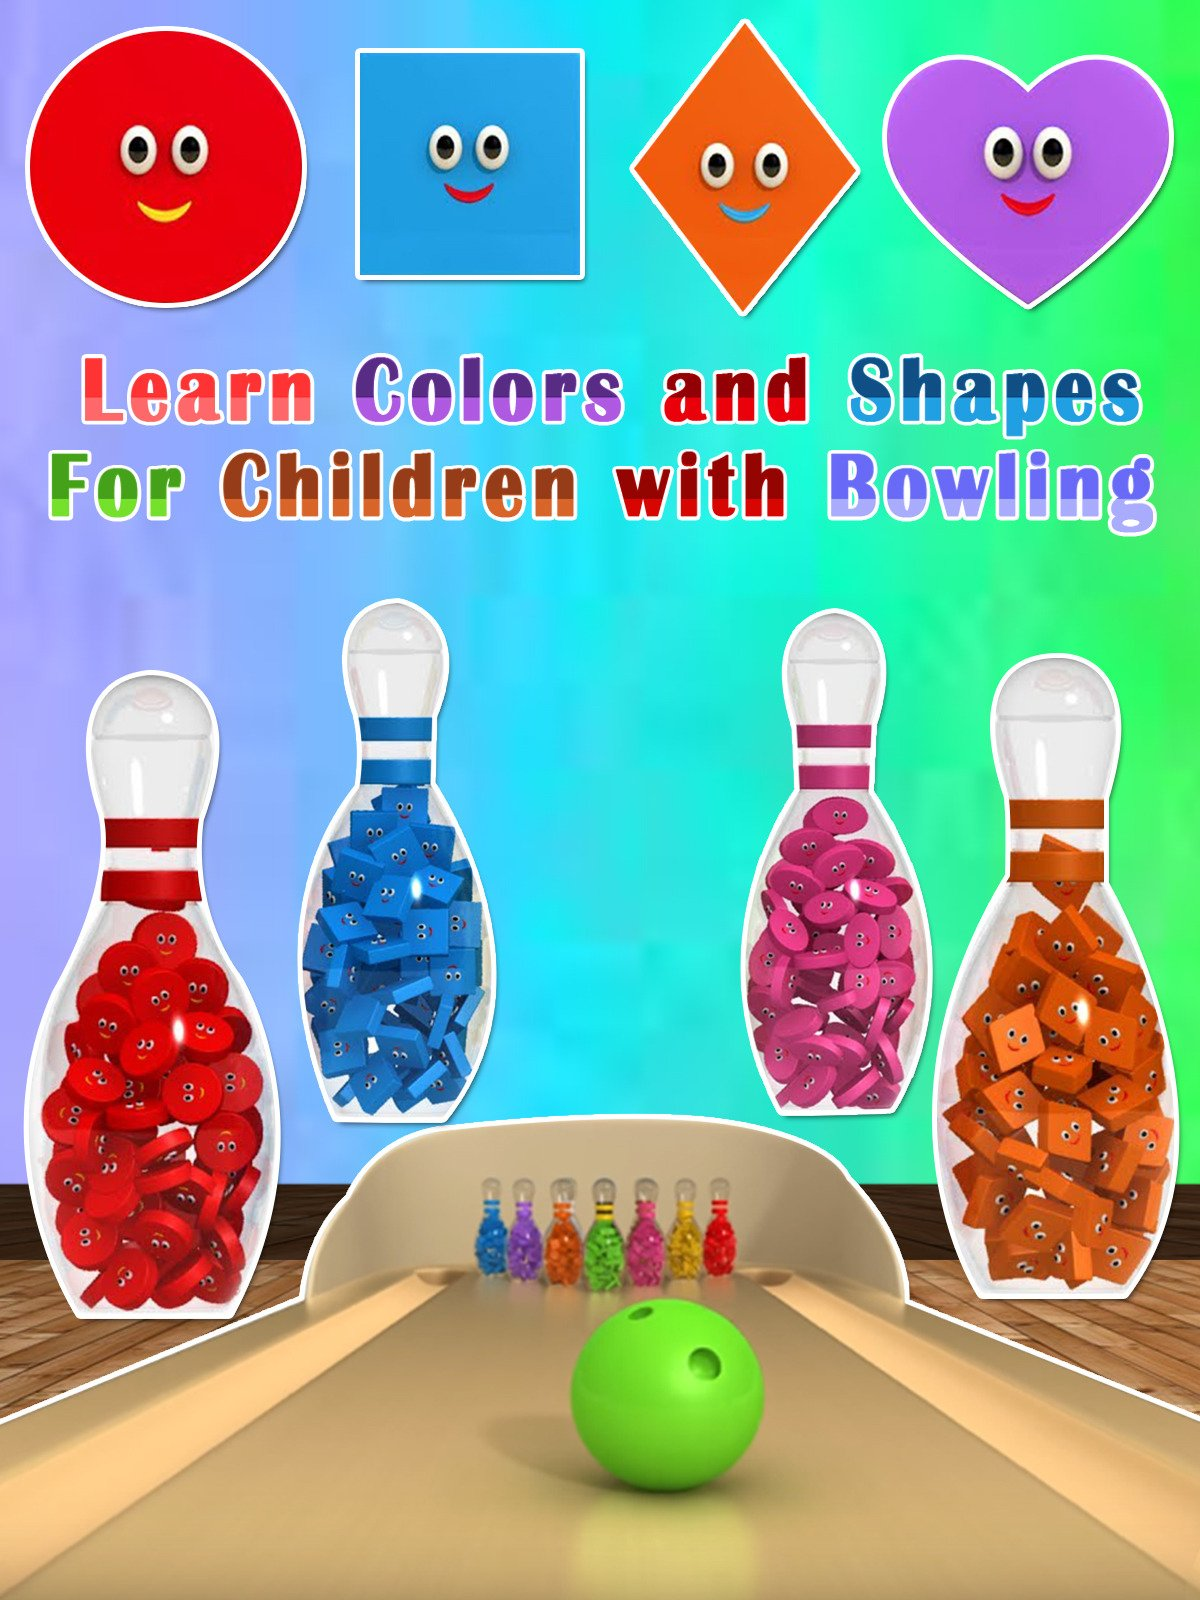 Learn Colors and Shapes For Children with Bowling